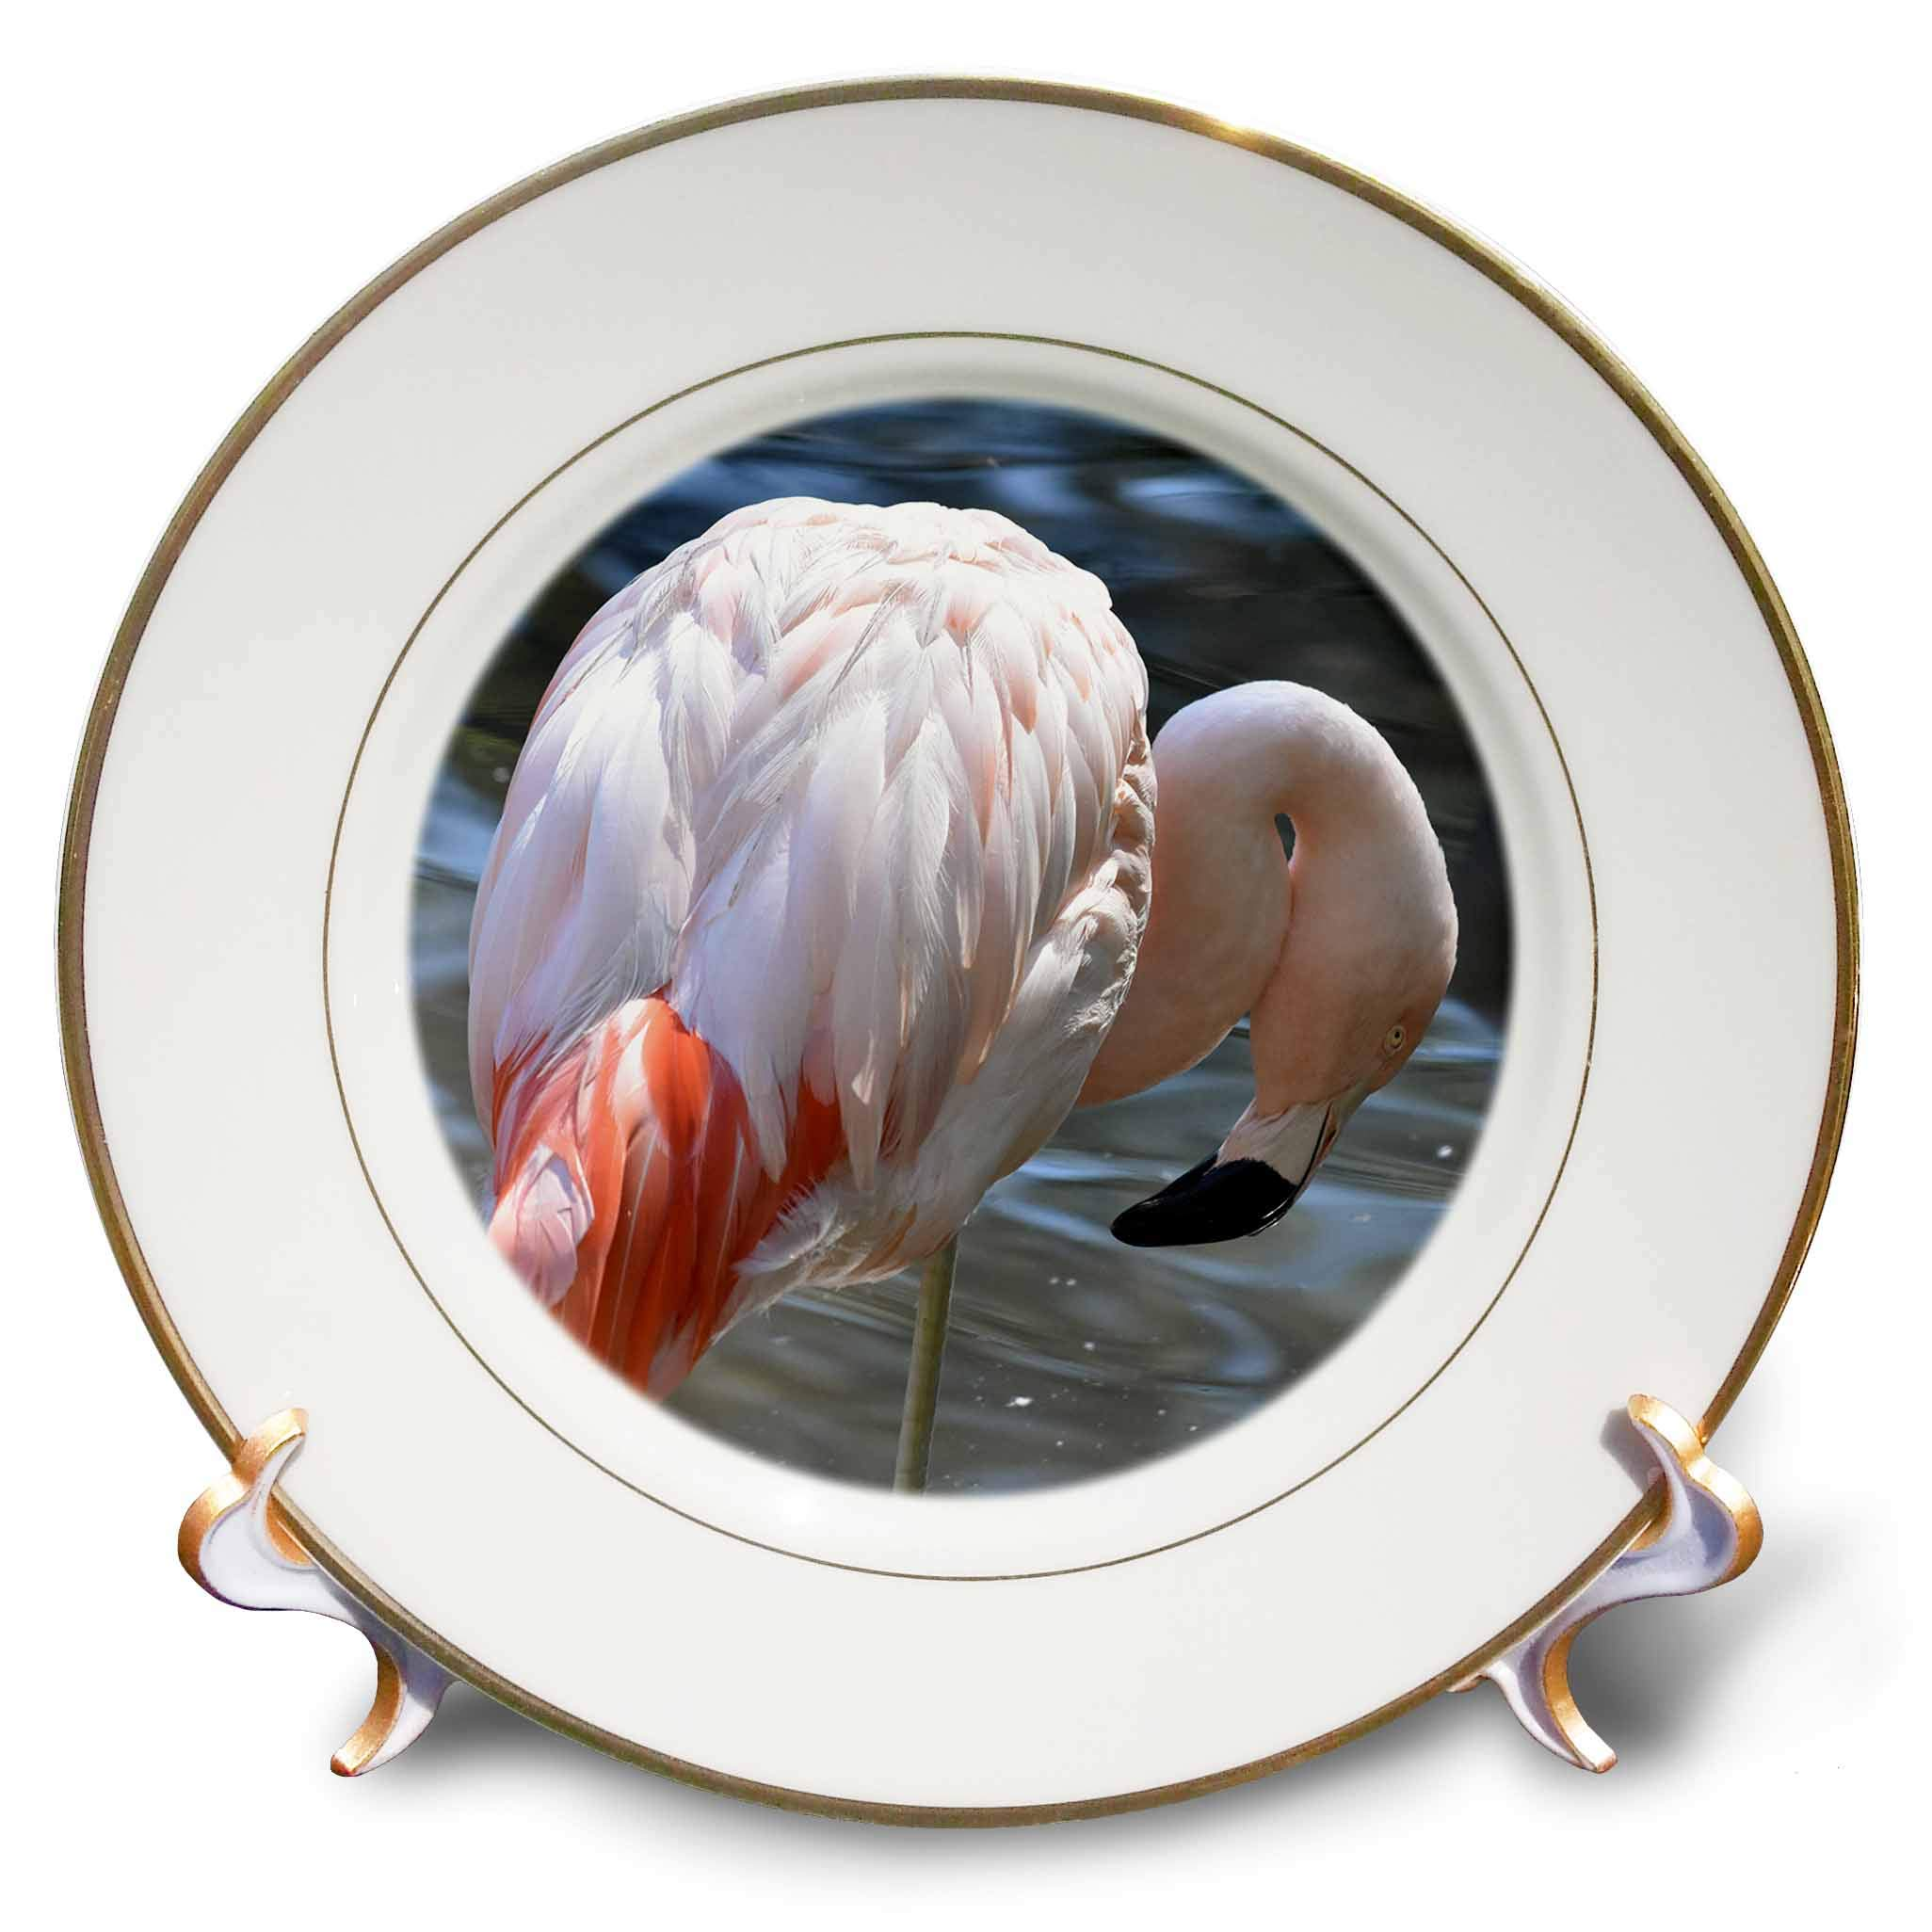 3dRose Susans Zoo Crew Animal - Light Pink Flamingo Looking Down - 8 inch Porcelain Plate (cp_294889_1)